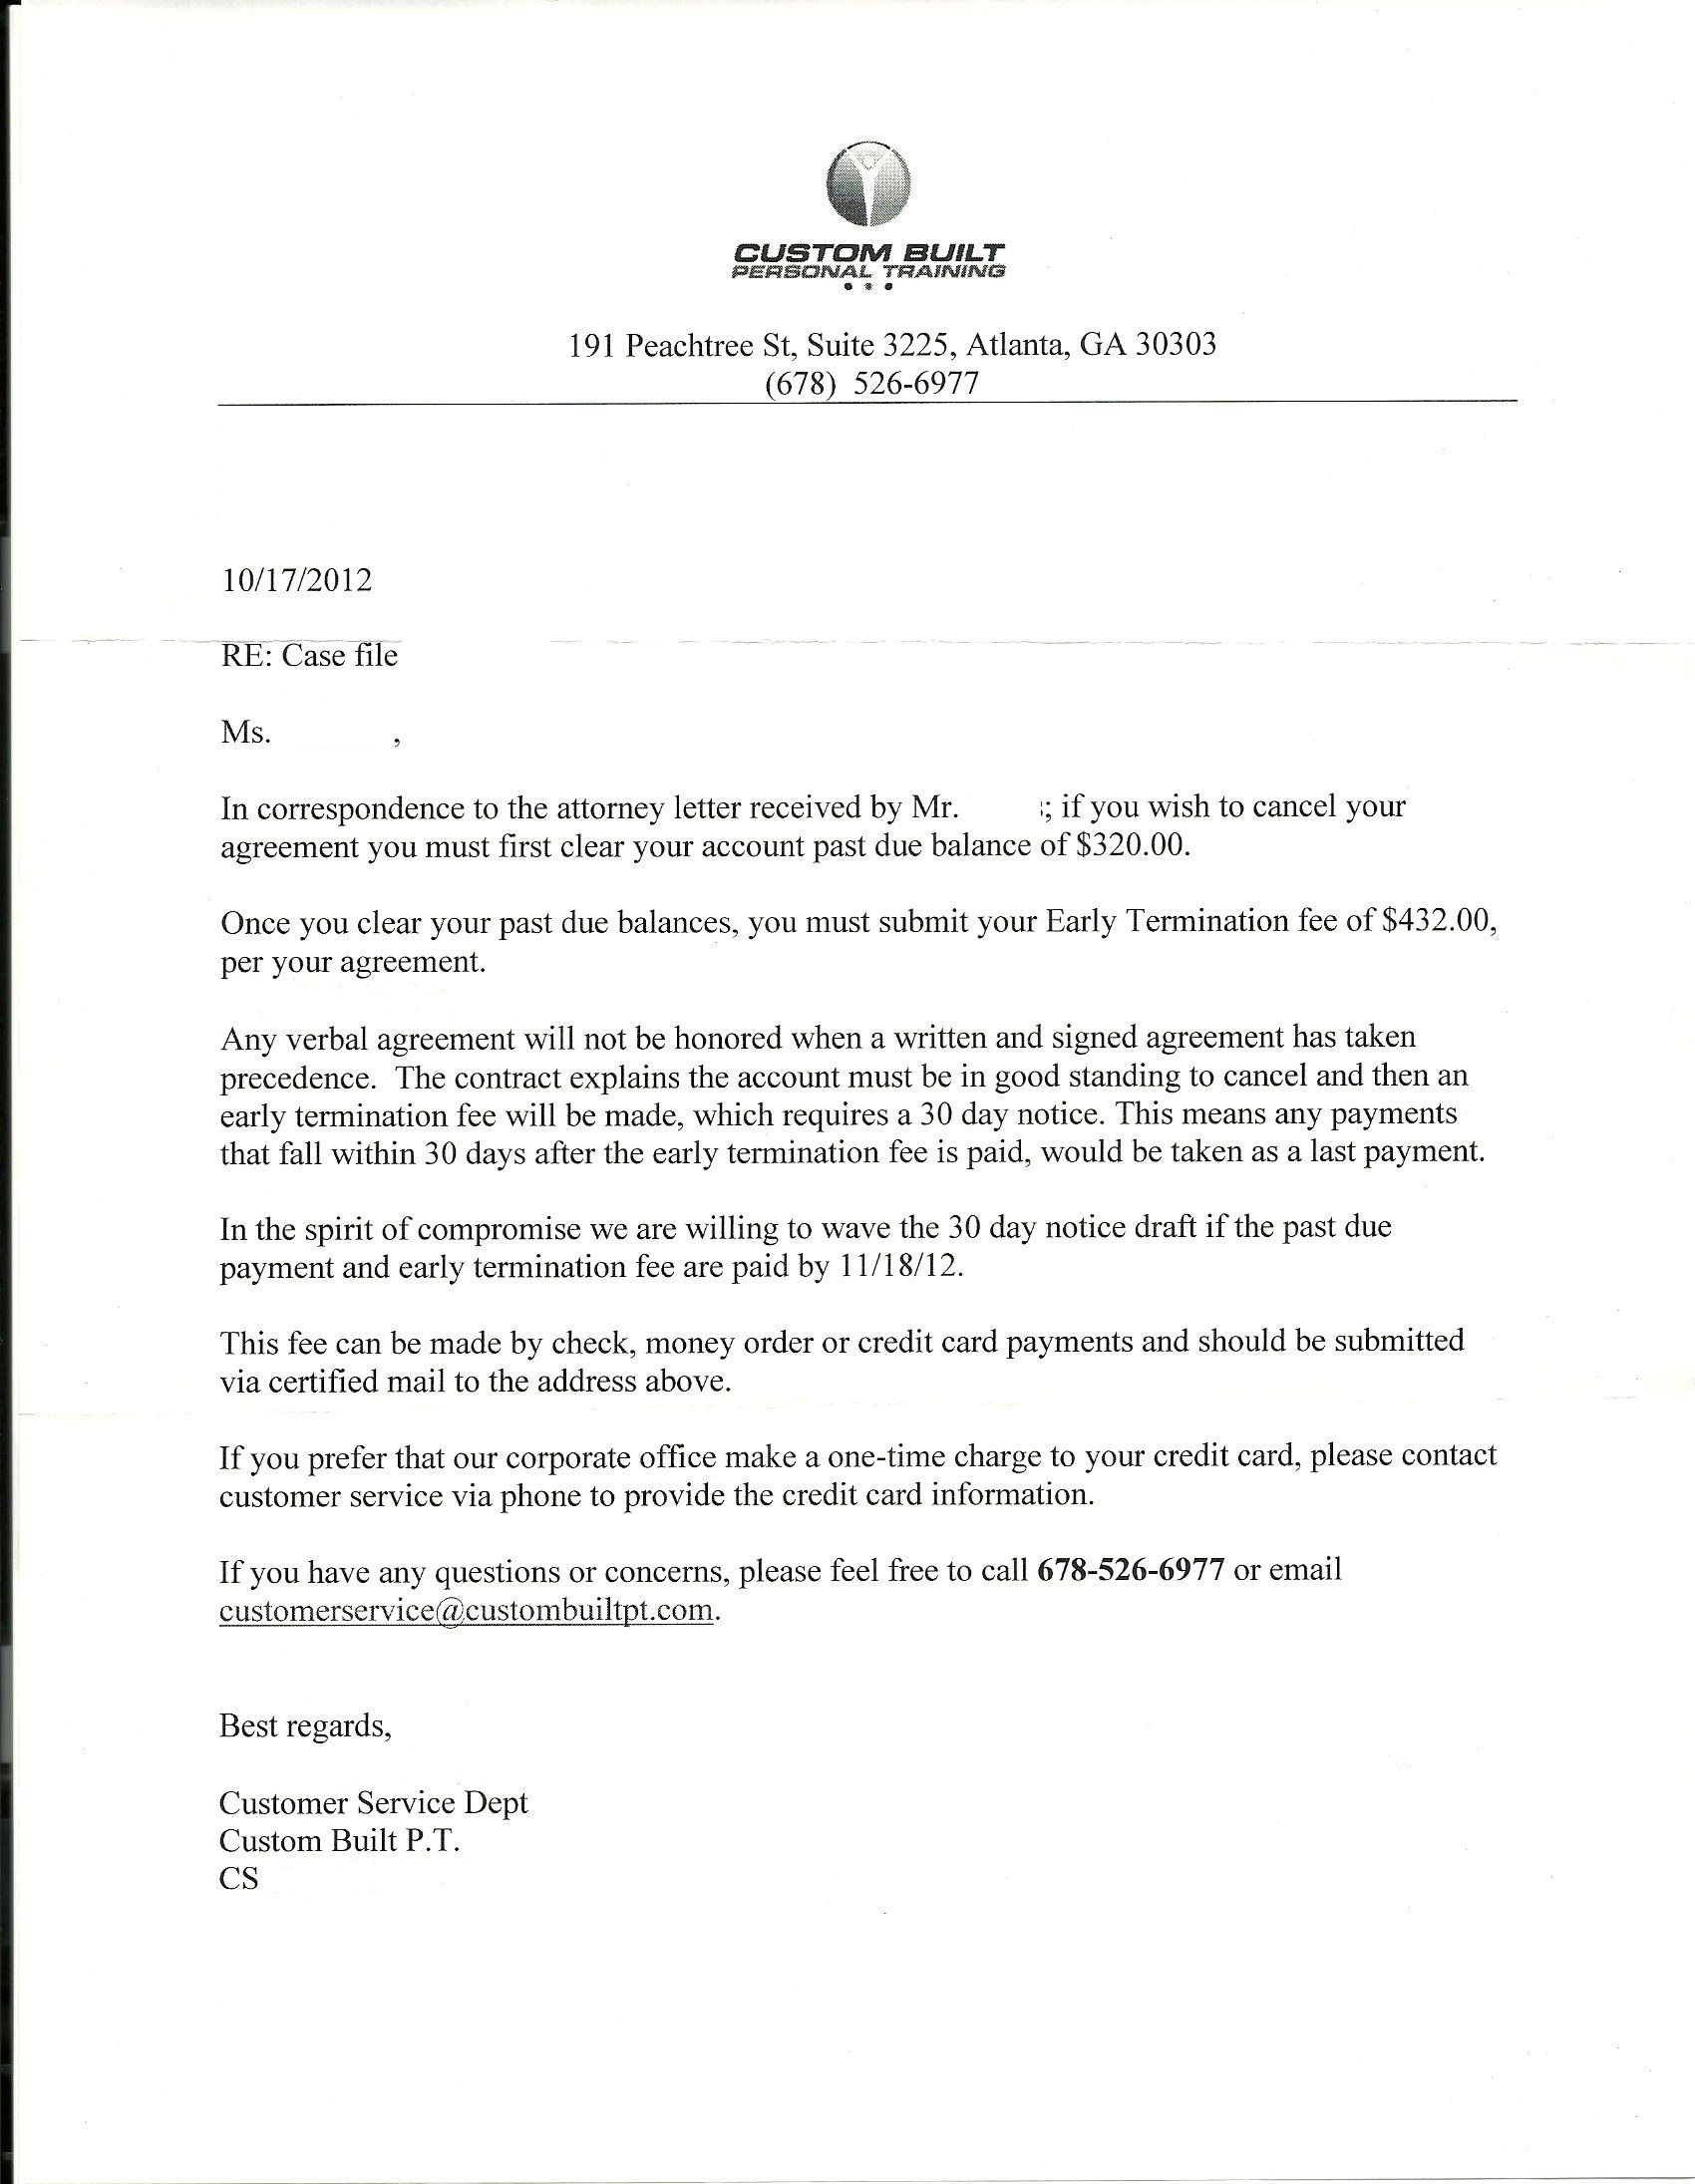 Assisted Living 30 Day Notice Letter Template - Negative Response Of Seller to Claim Letter Saferbrowser Yahoo